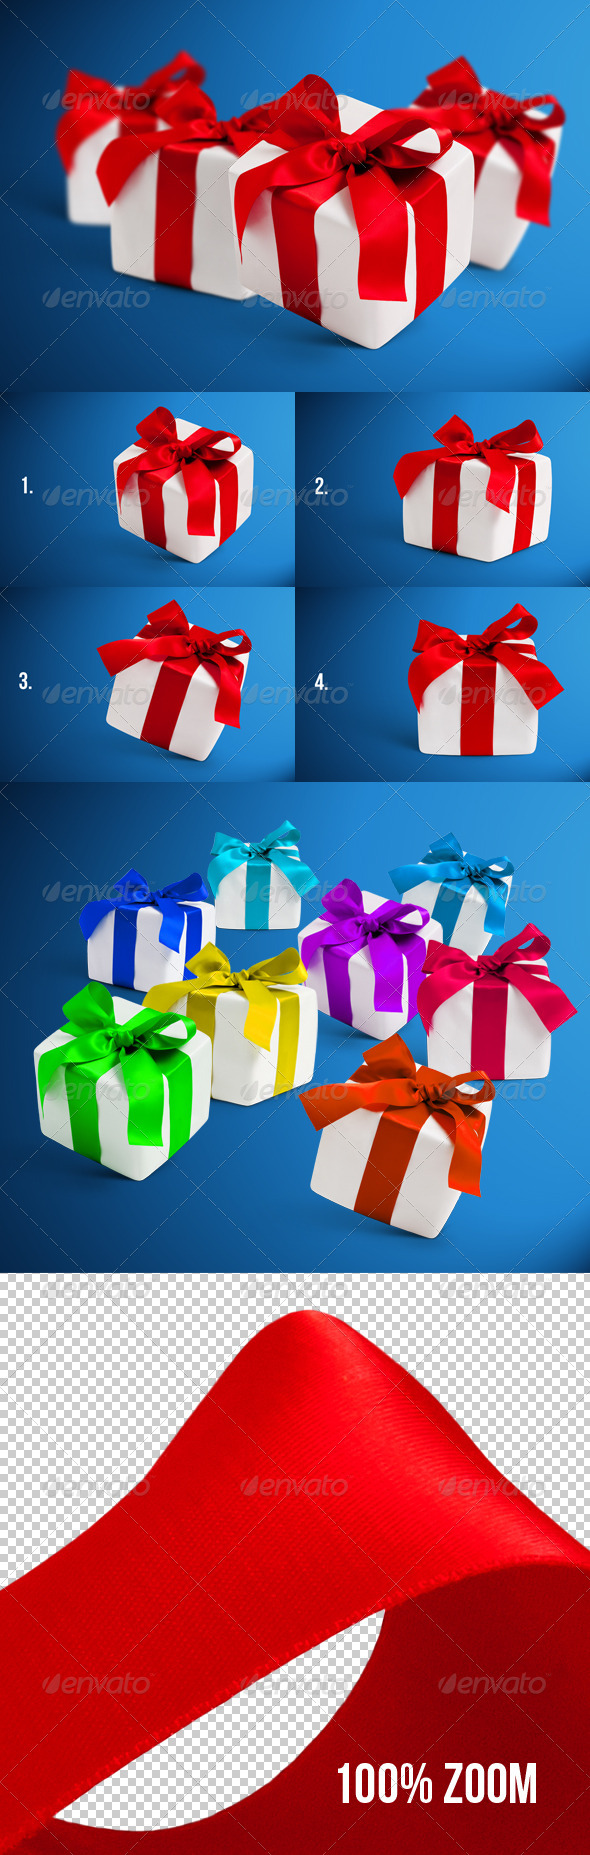 4 Gift Boxes with Shadows Photorealistic - Miscellaneous Isolated Objects